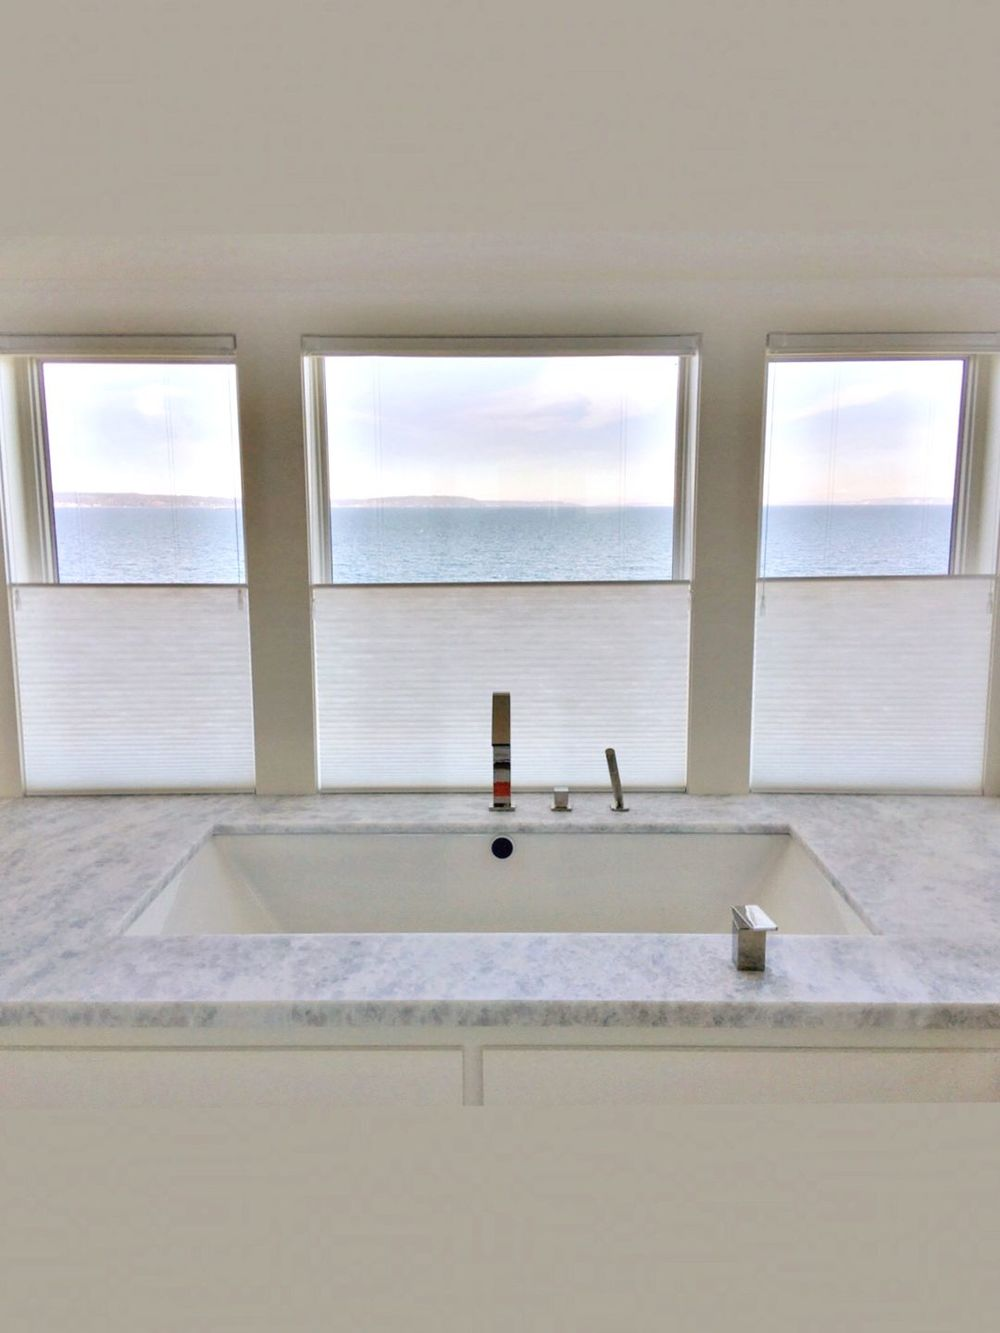 A close up look at this bathroom's drop-in soaking tub by the glass windows, covered by window shades.